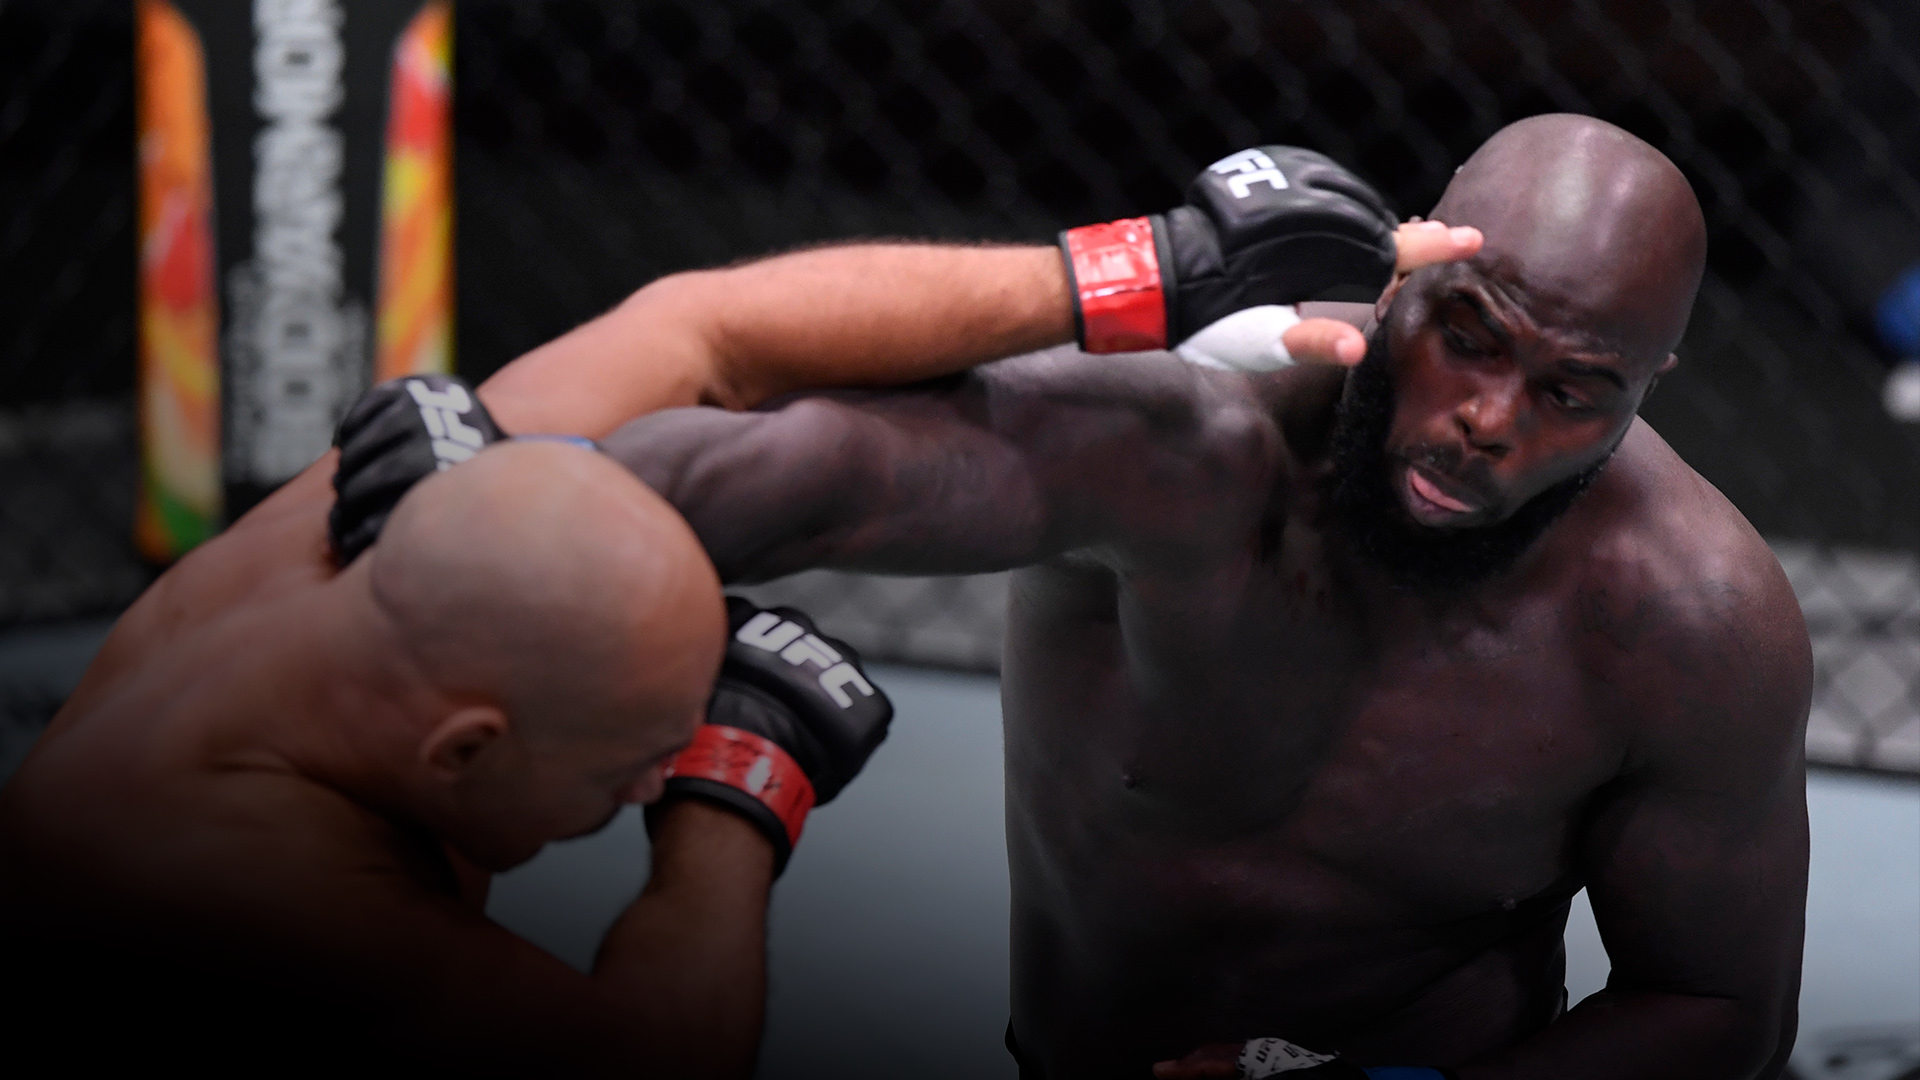 Jairzinho Rozenstruik of Suriname punches Junior Dos Santos of Brazil in their heavyweight bout during the UFC 252 event at UFC APEX on August 15, 2020 in Las Vegas, Nevada. (Photo by Chris Unger/Zuffa LLC)